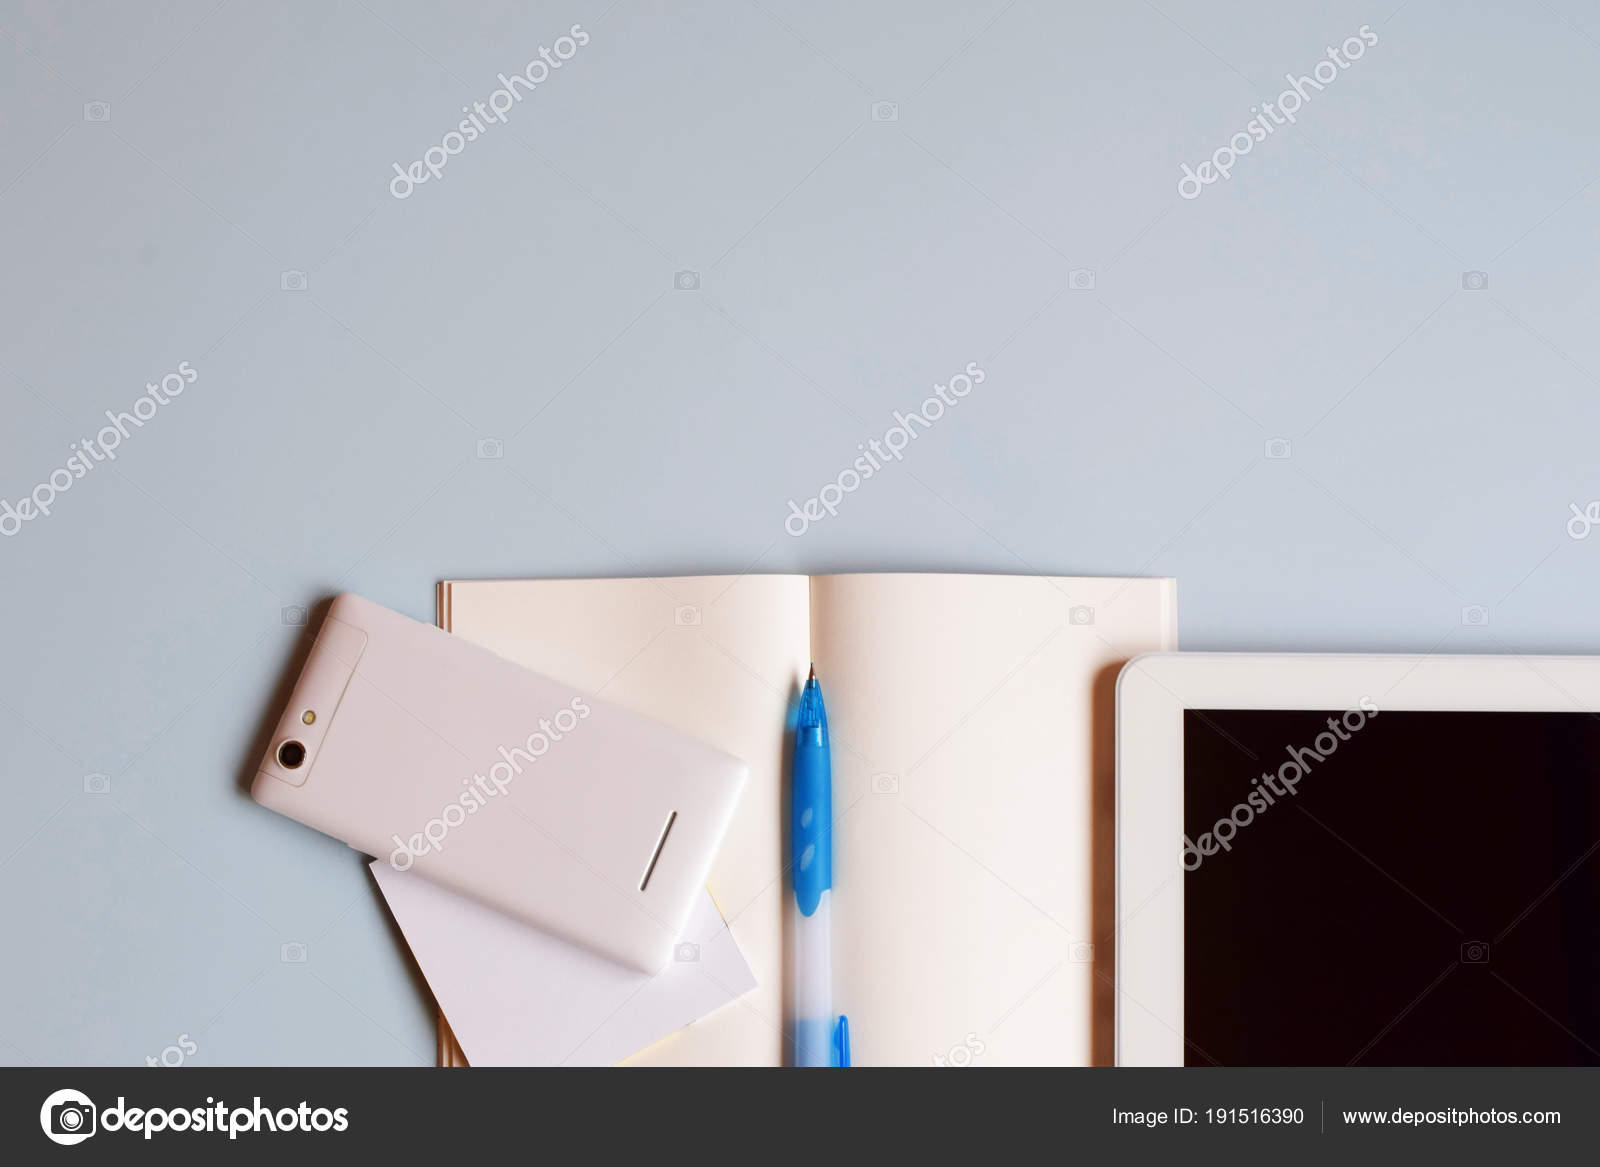 Office Desk Table Notebook Smart Phone Tablet Pen Top View Stock Photo C Ingae 191516390